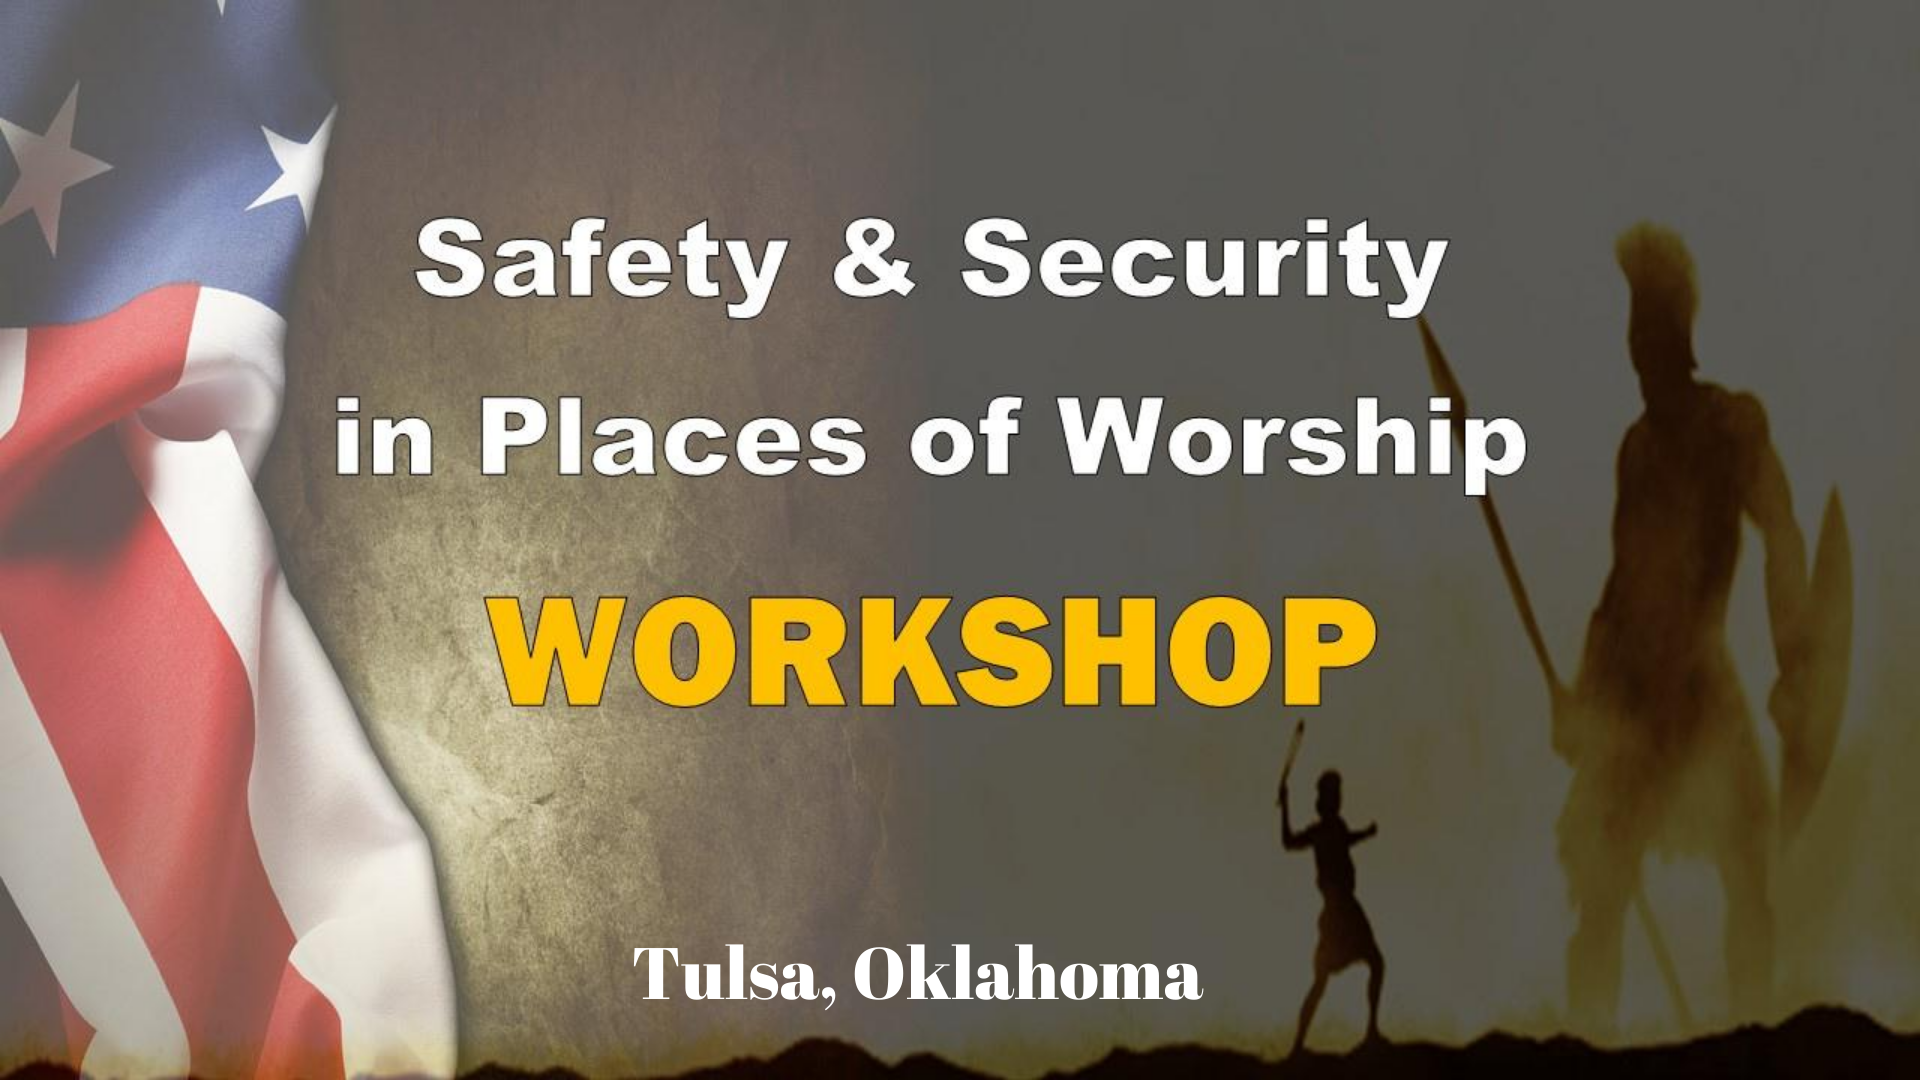 Safety and Security in Places of Worship - Workshop